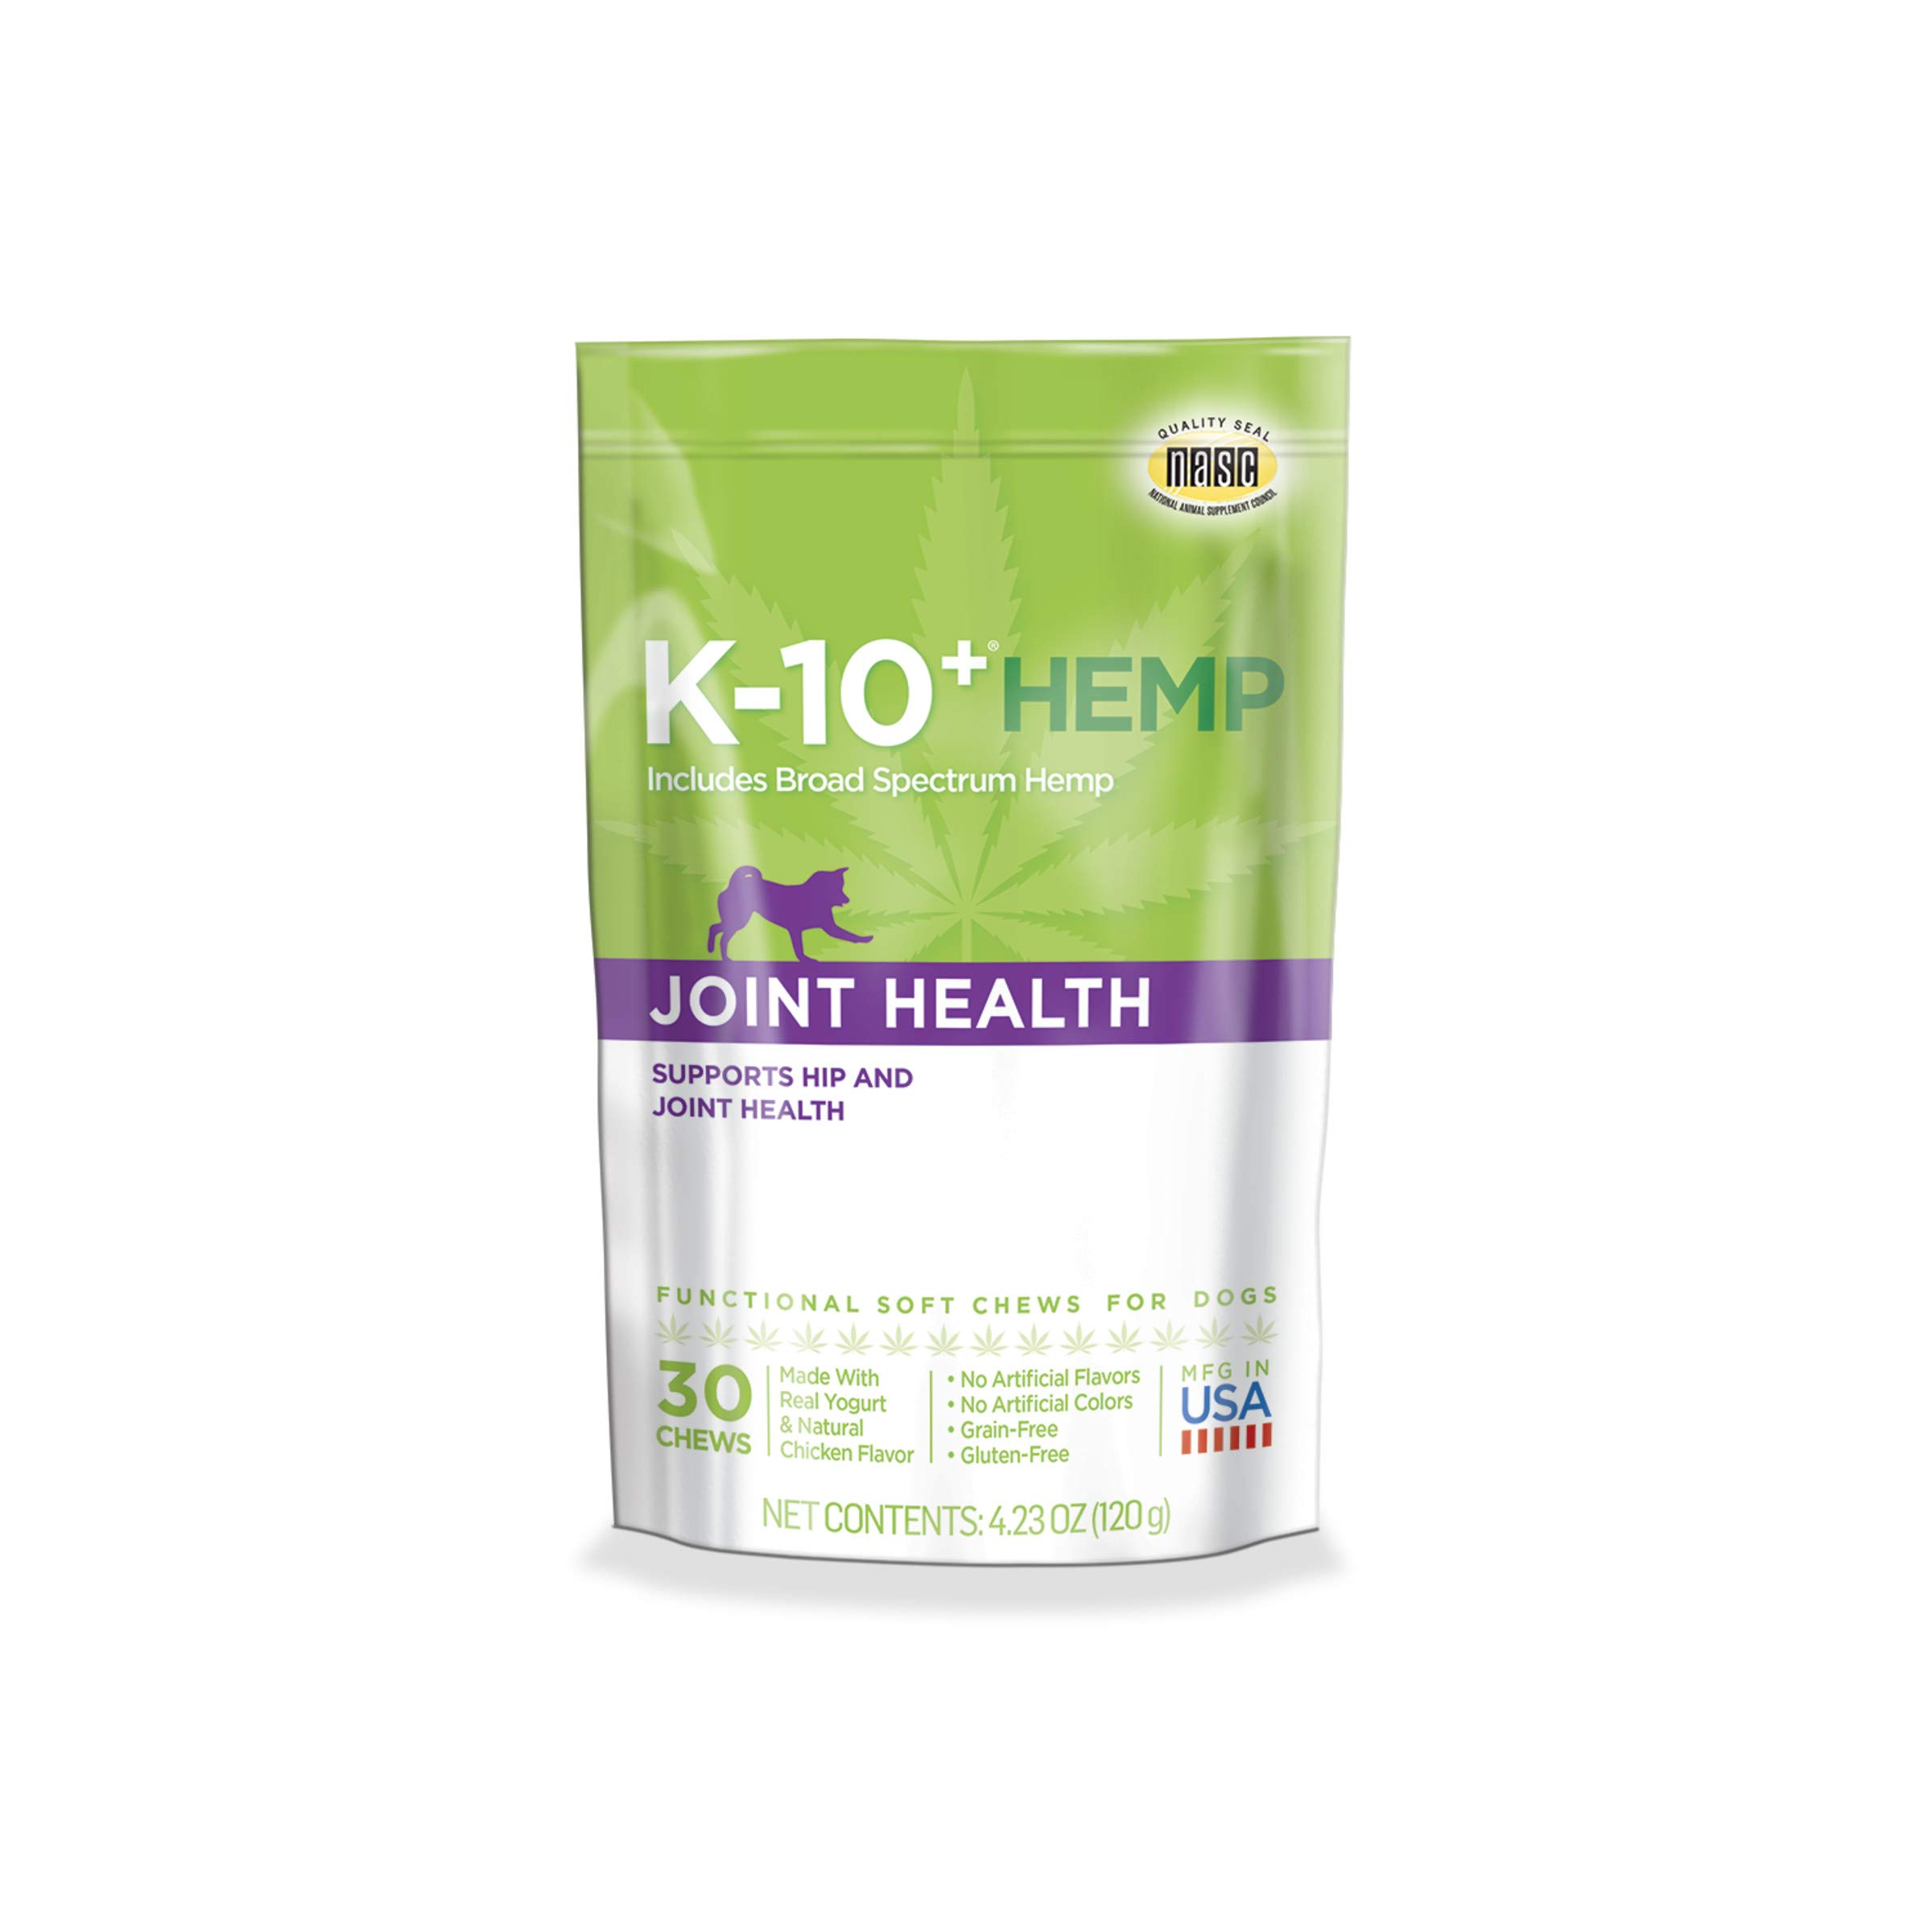 K-10+ Hemp Joint Health Daily Supplement for Dogs - 4.23 oz. Pouch by K-10+